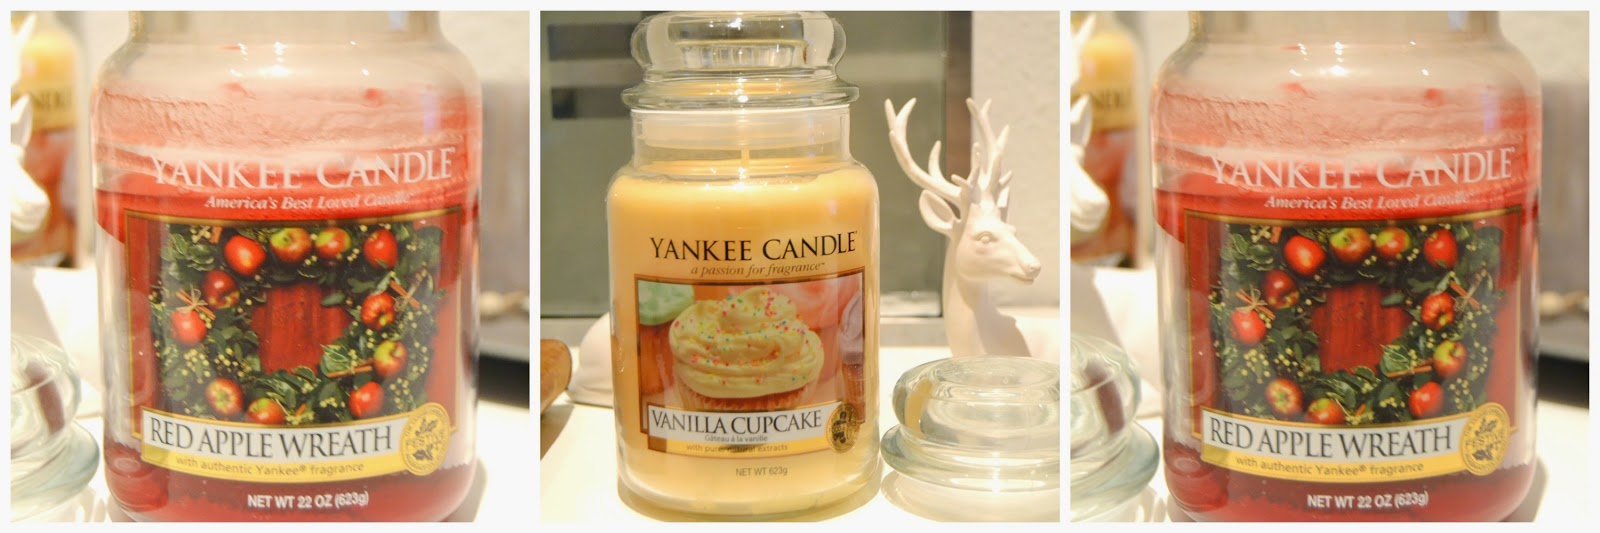 Yankee Candle Jar Red Apple Wreath Vanilla Cupcake